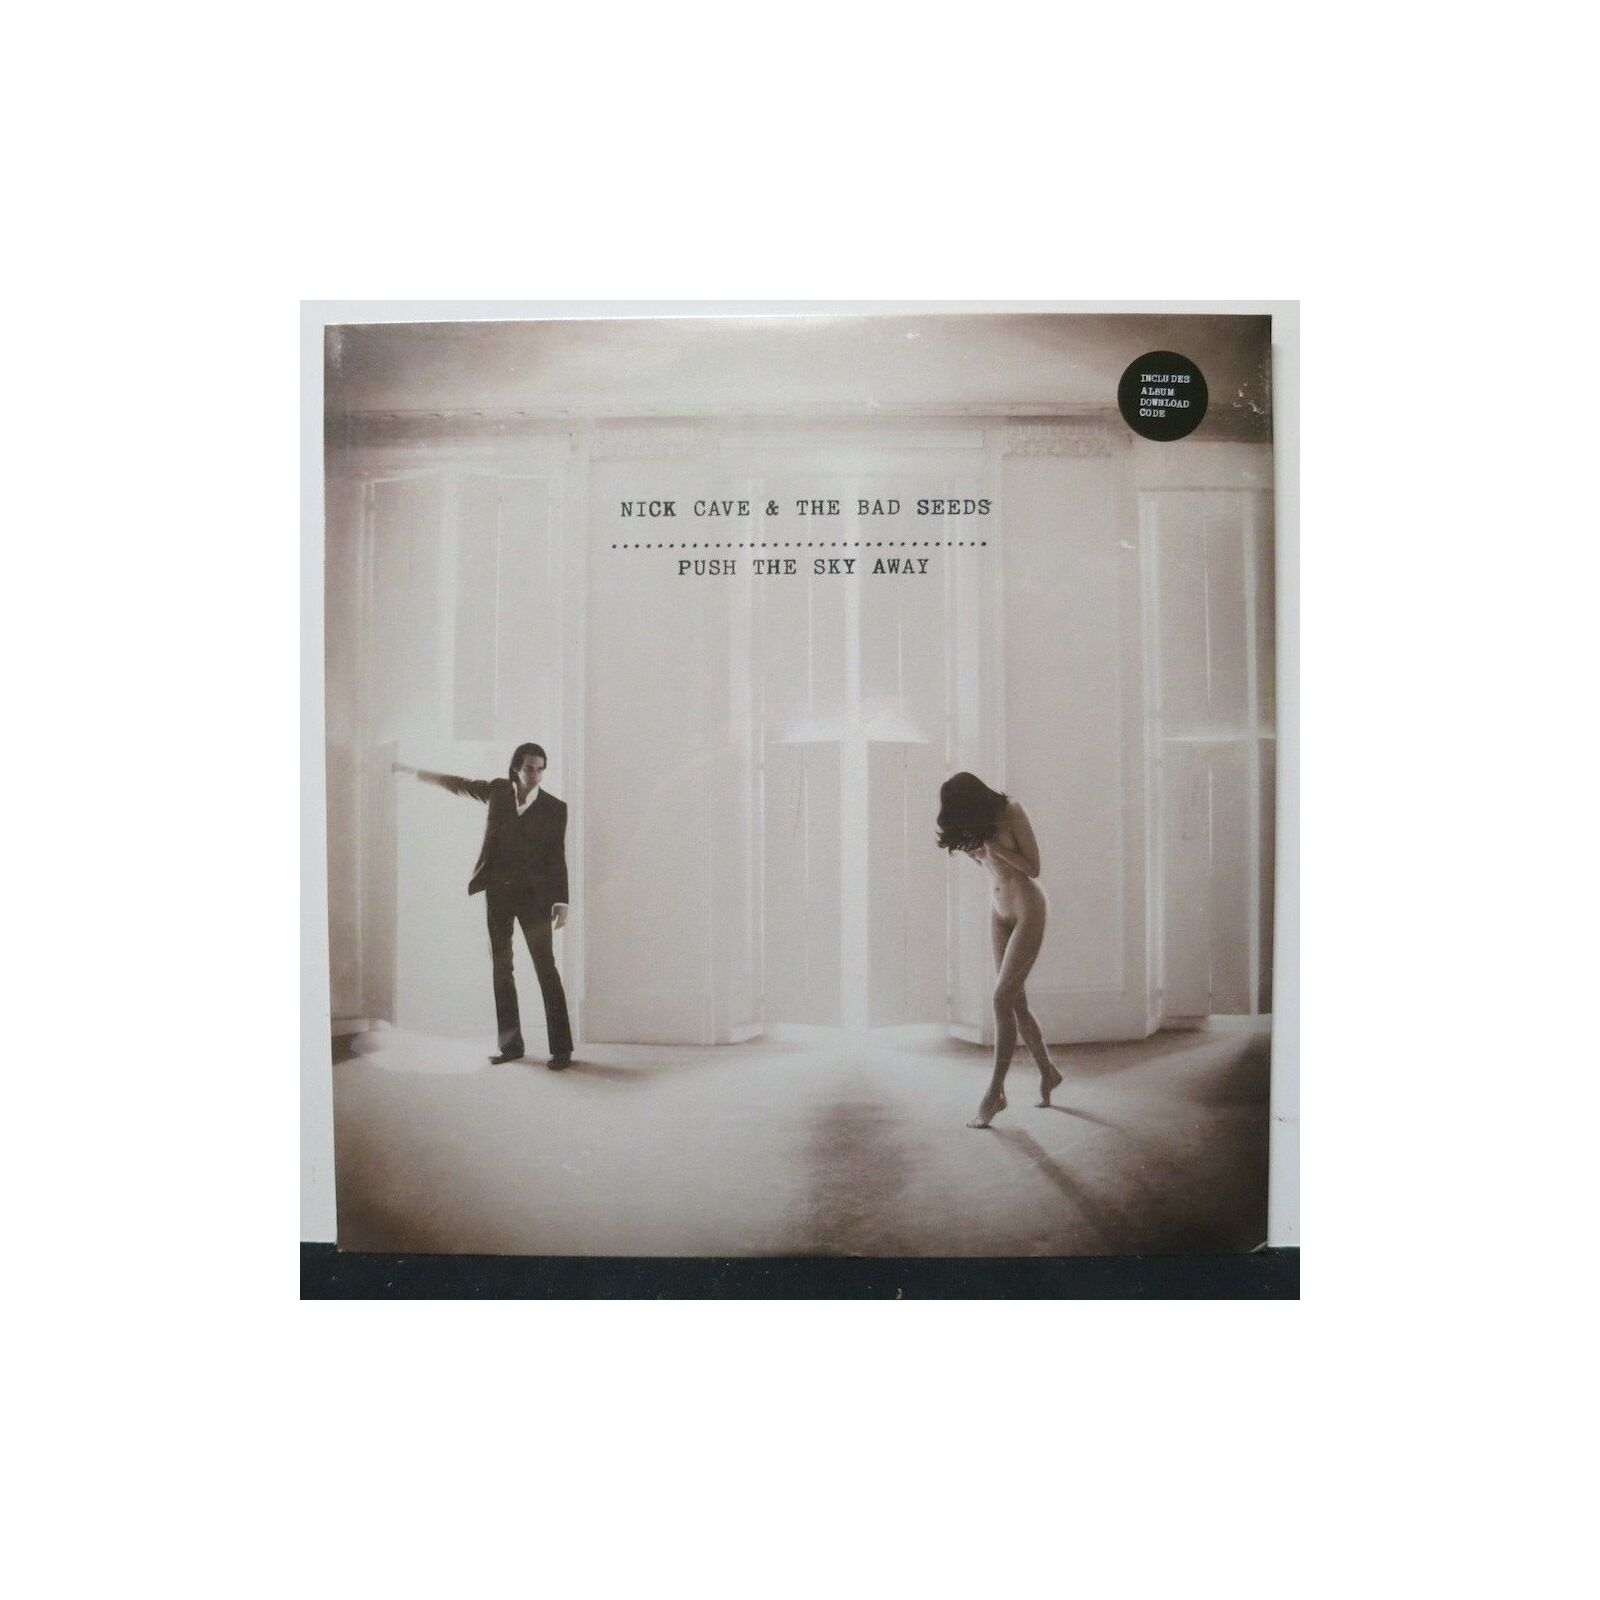 NICK CAVE & THE BAD SEEDS - PUSH THE SKY AWAY VINYL